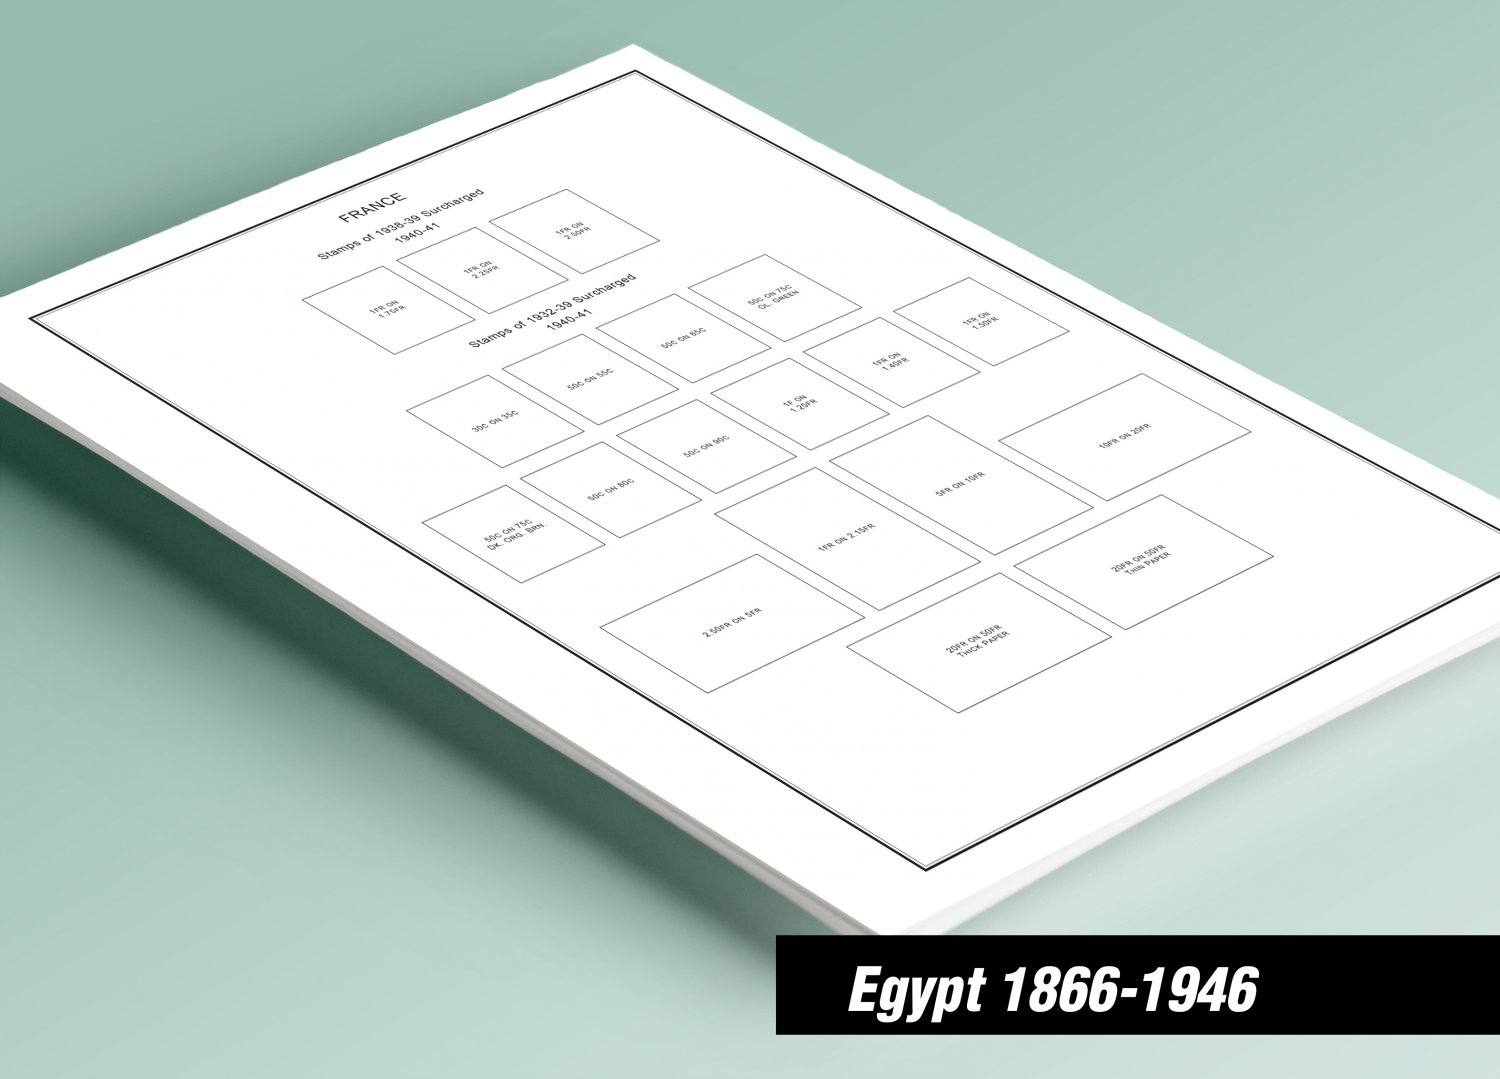 PRINTED EGYPT [CLASS.] 1866-1946 STAMP ALBUM PAGES (30 pages)